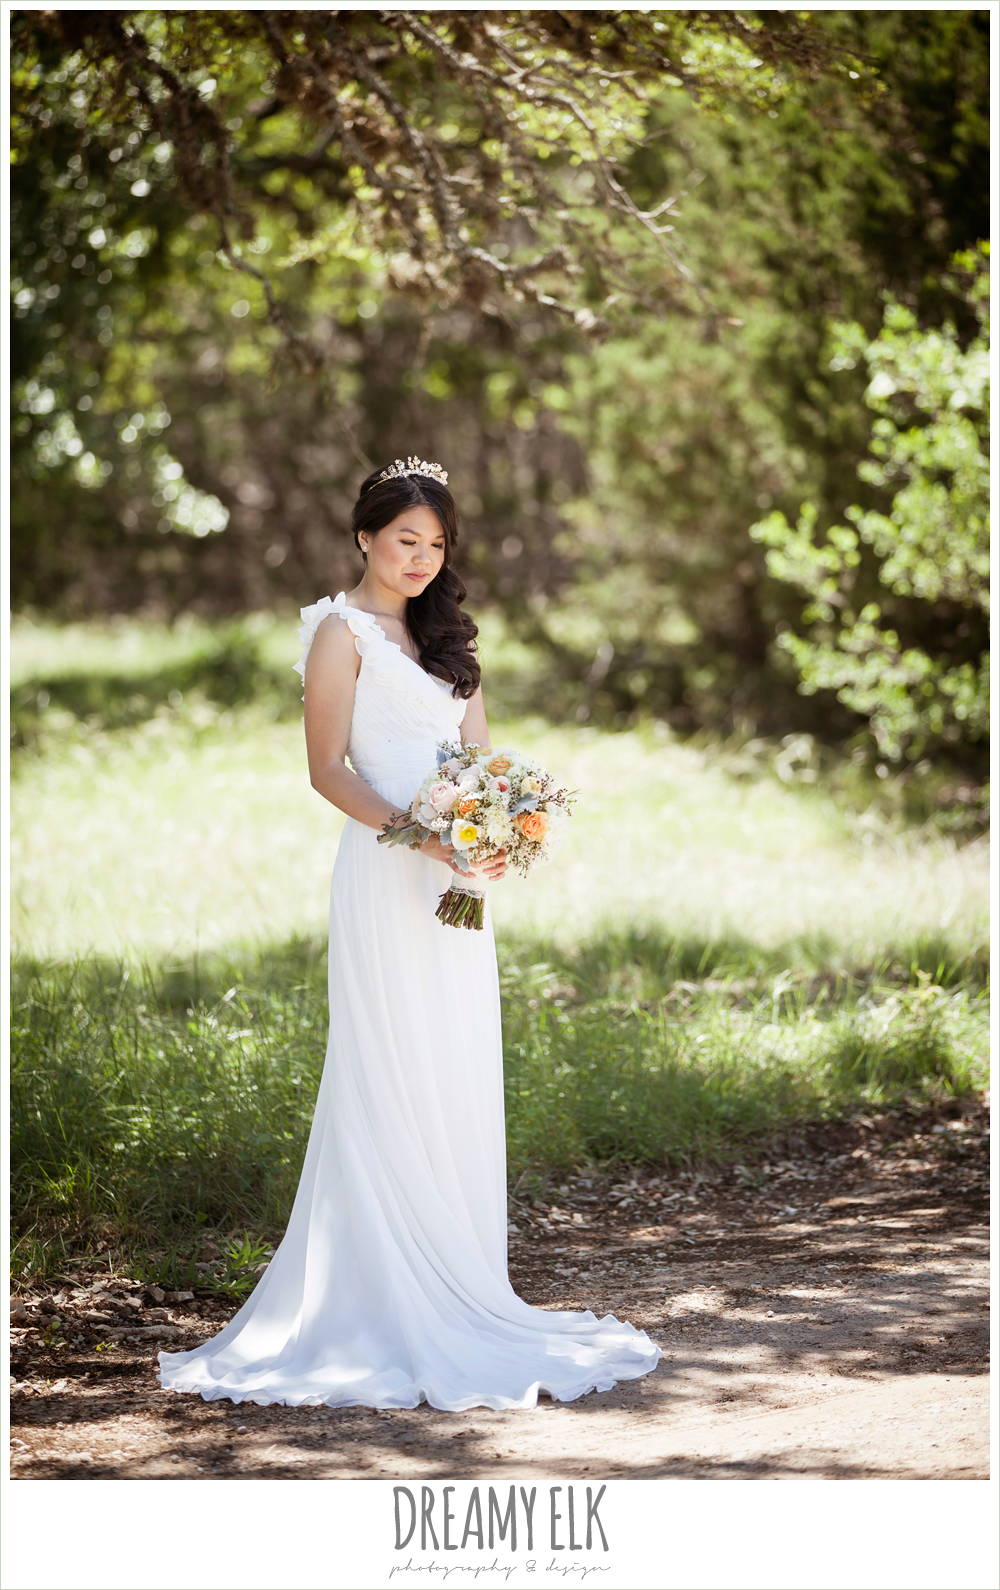 chiffon wedding dress with ruffle sleeve, wedding hair side swept, pink orange and yellow bouquet, la hacienda, dripping springs, texas {dreamy elk photography and design} photo